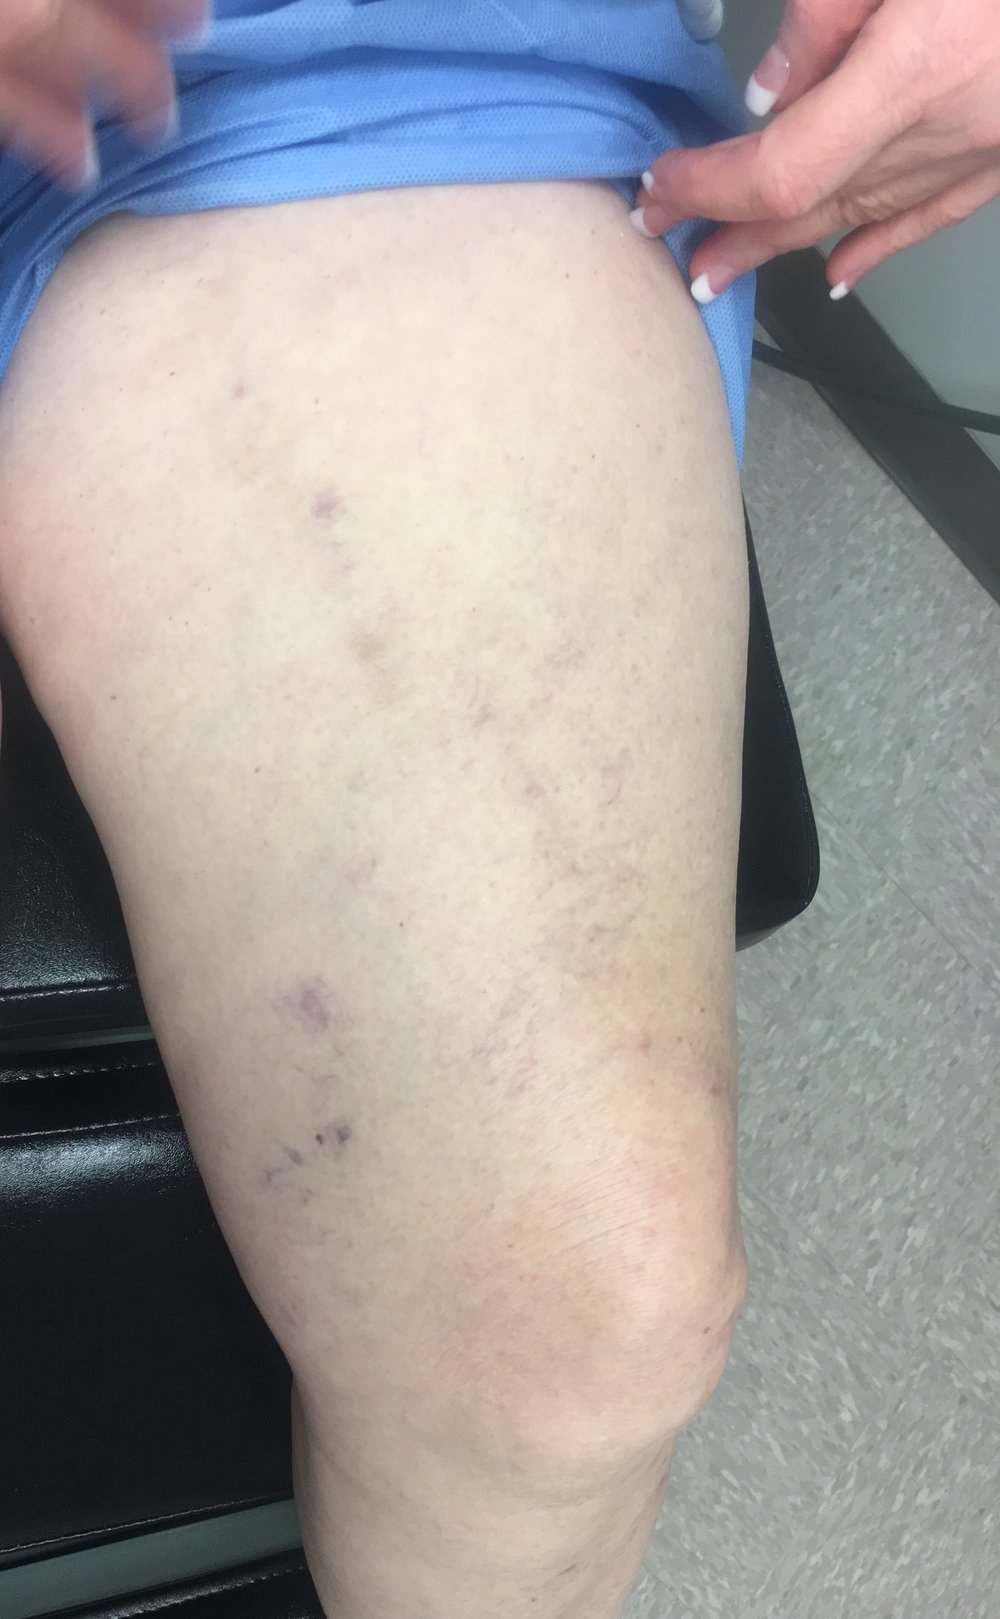 A few weeks after removal of the varicose vein in the office her leg feels great! No more pain or tenderness. No more burning, itching or heaviness. She has a few minor bruises left but no scarring. The bruises will disappear in a few more weeks. Overall procedure took about an hour in the office with local anesthesia and no pain. Connie is on her feet all day and now does not have to wear compression to ease the pain.